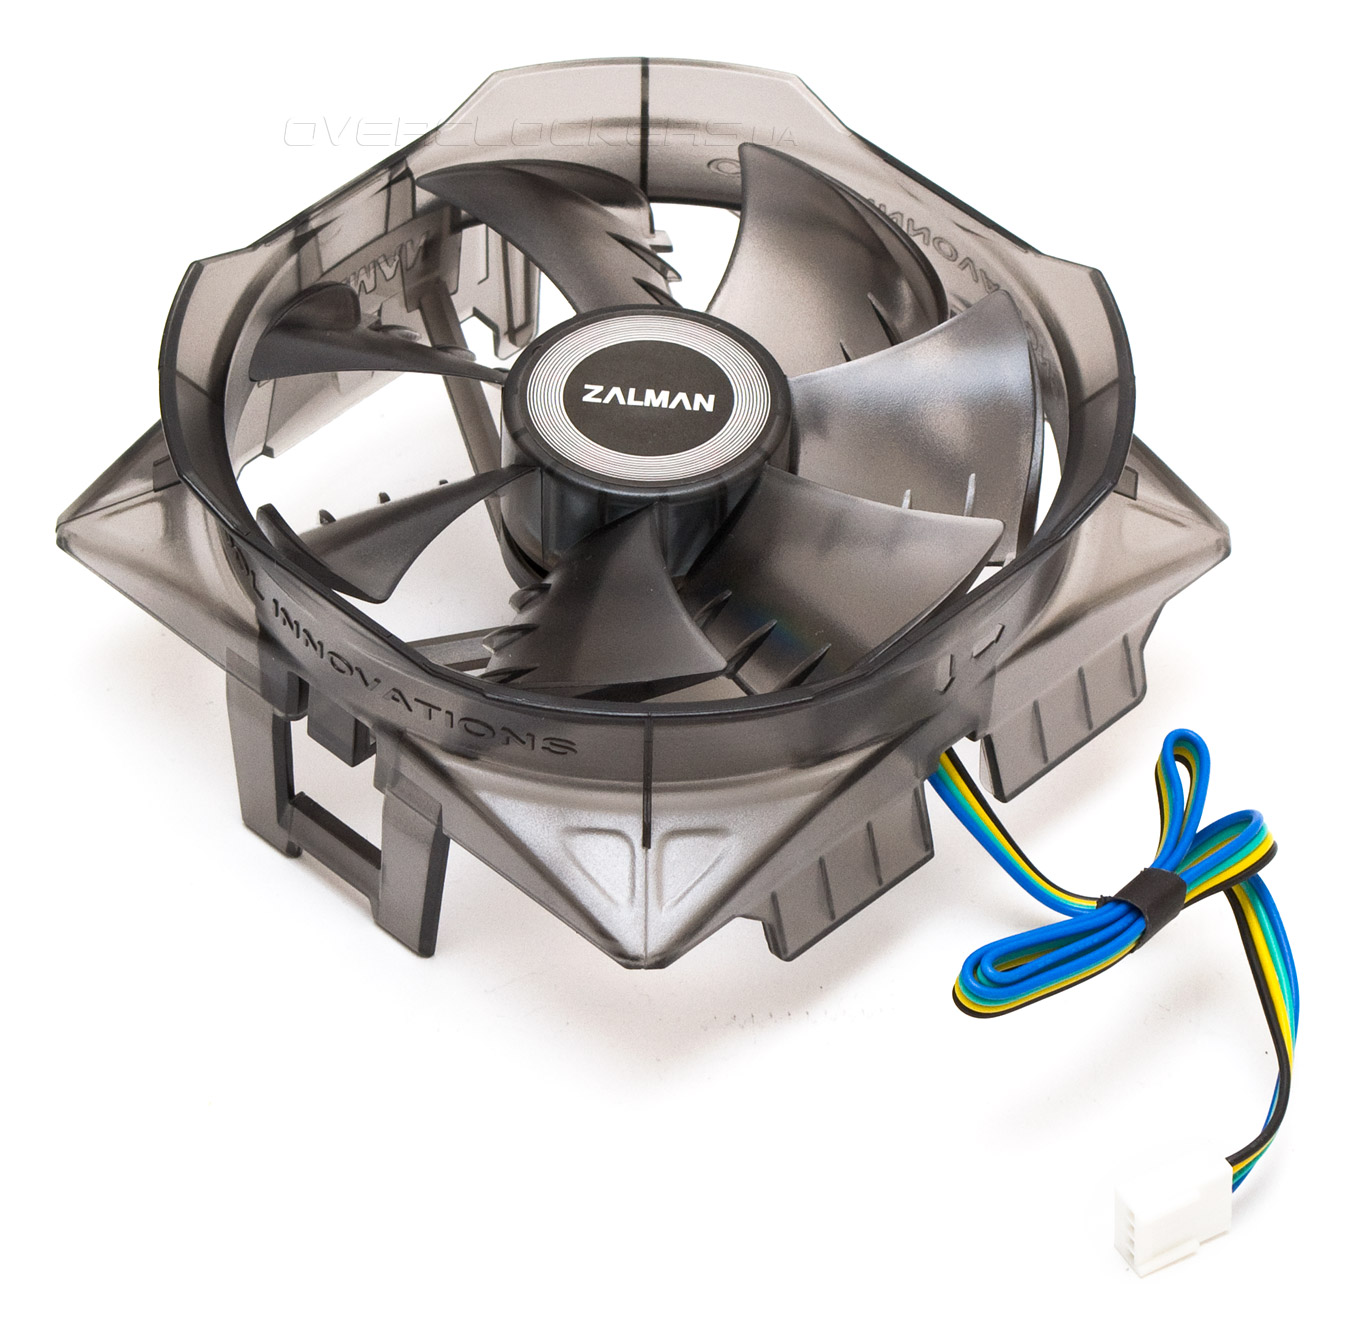 A zalman fan mate allows control of the fan speed